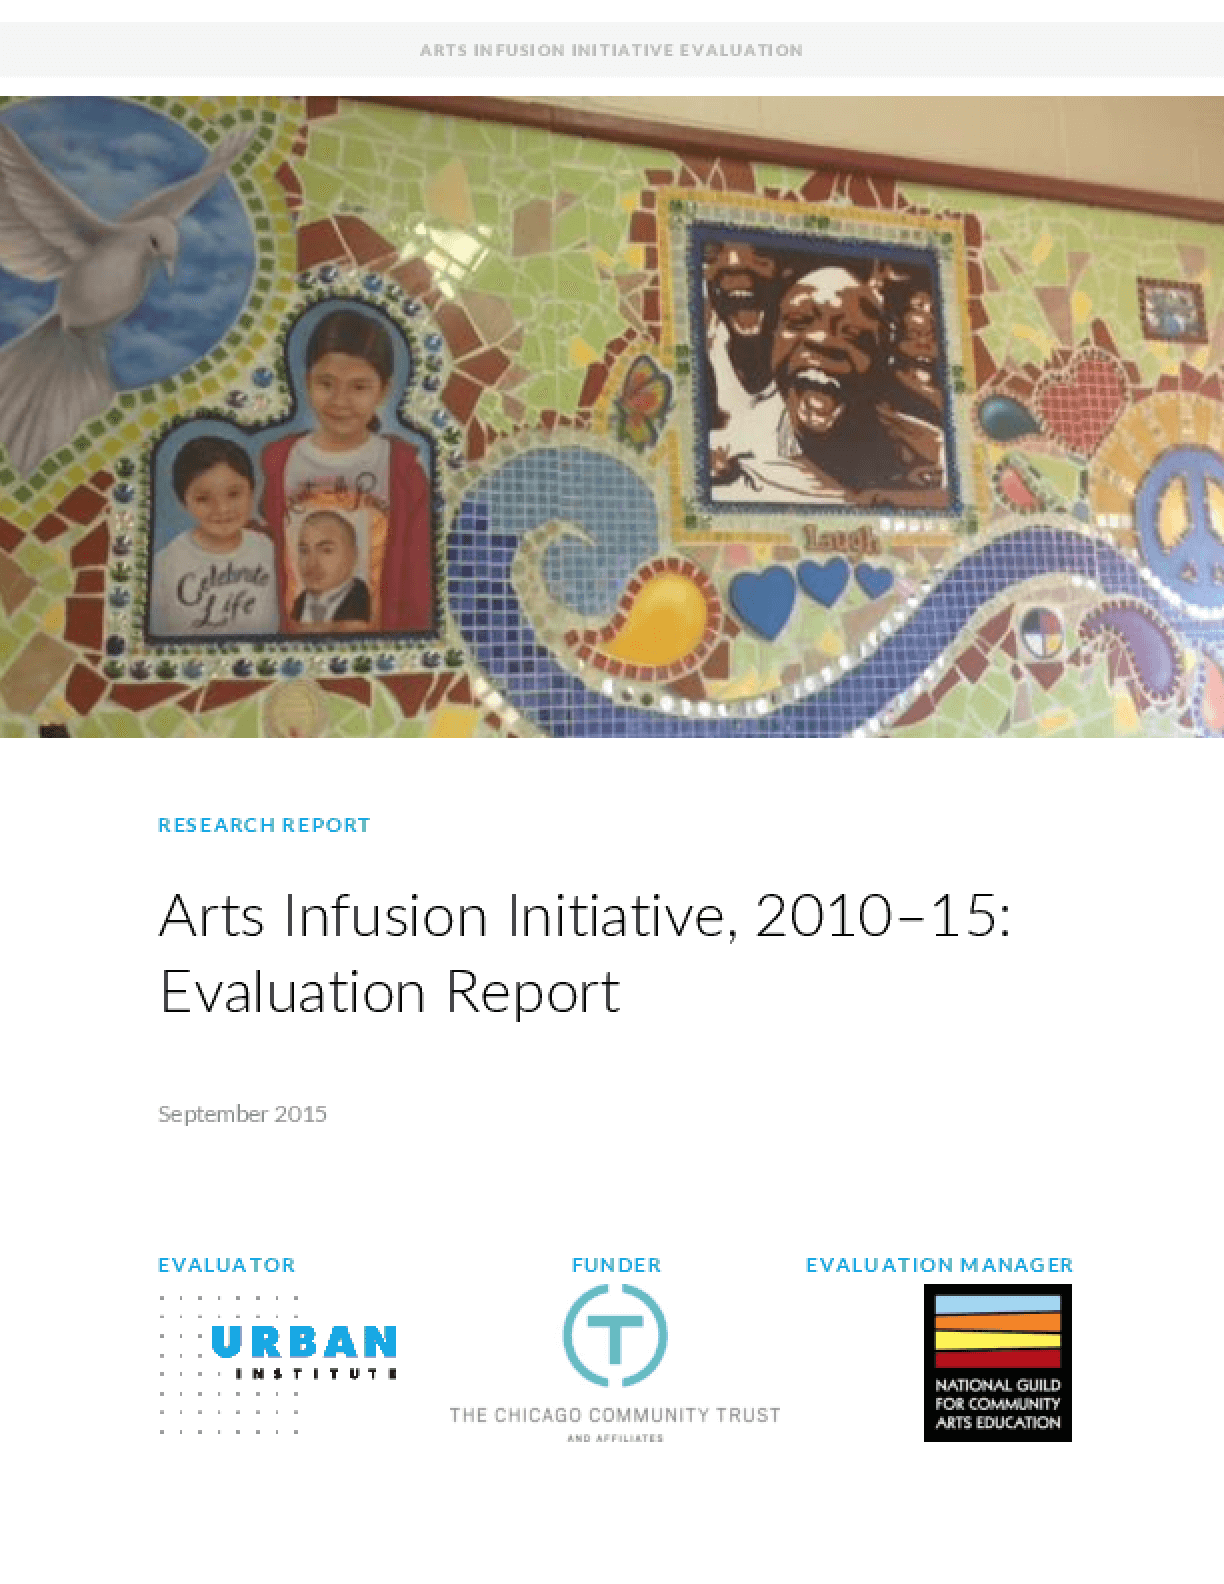 Arts Infusion Initiative, 2010-15: Evaluation Report